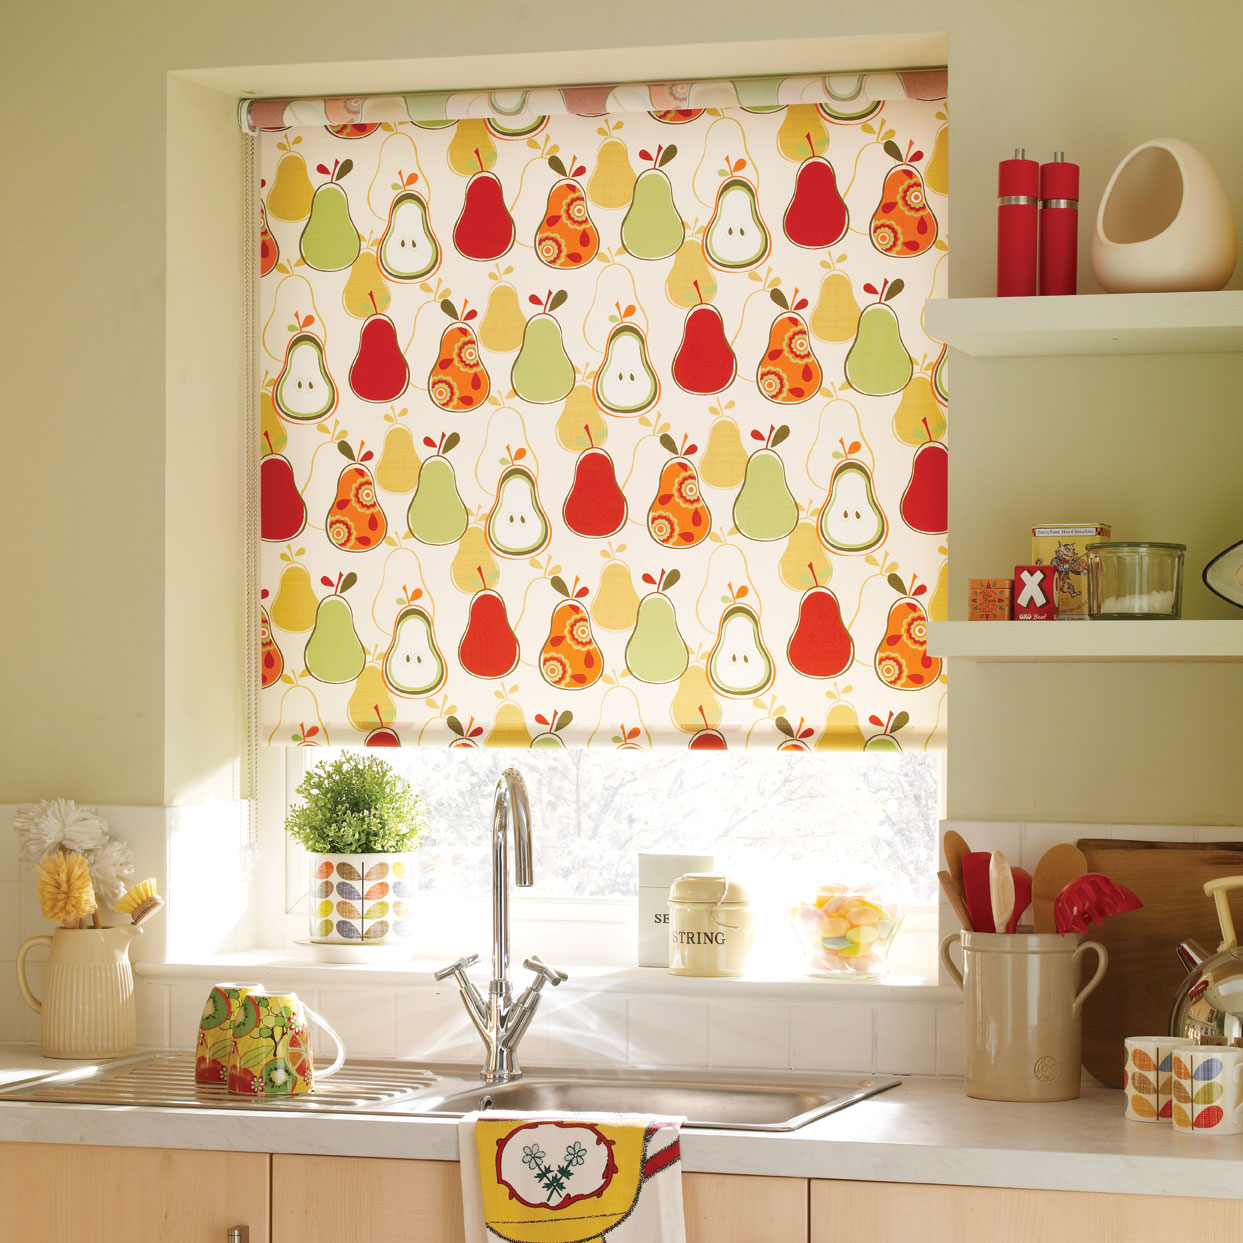 Como Hacer Cortinas De Cocina Kitchen Blinds Roller Venetian And More Expression Blinds